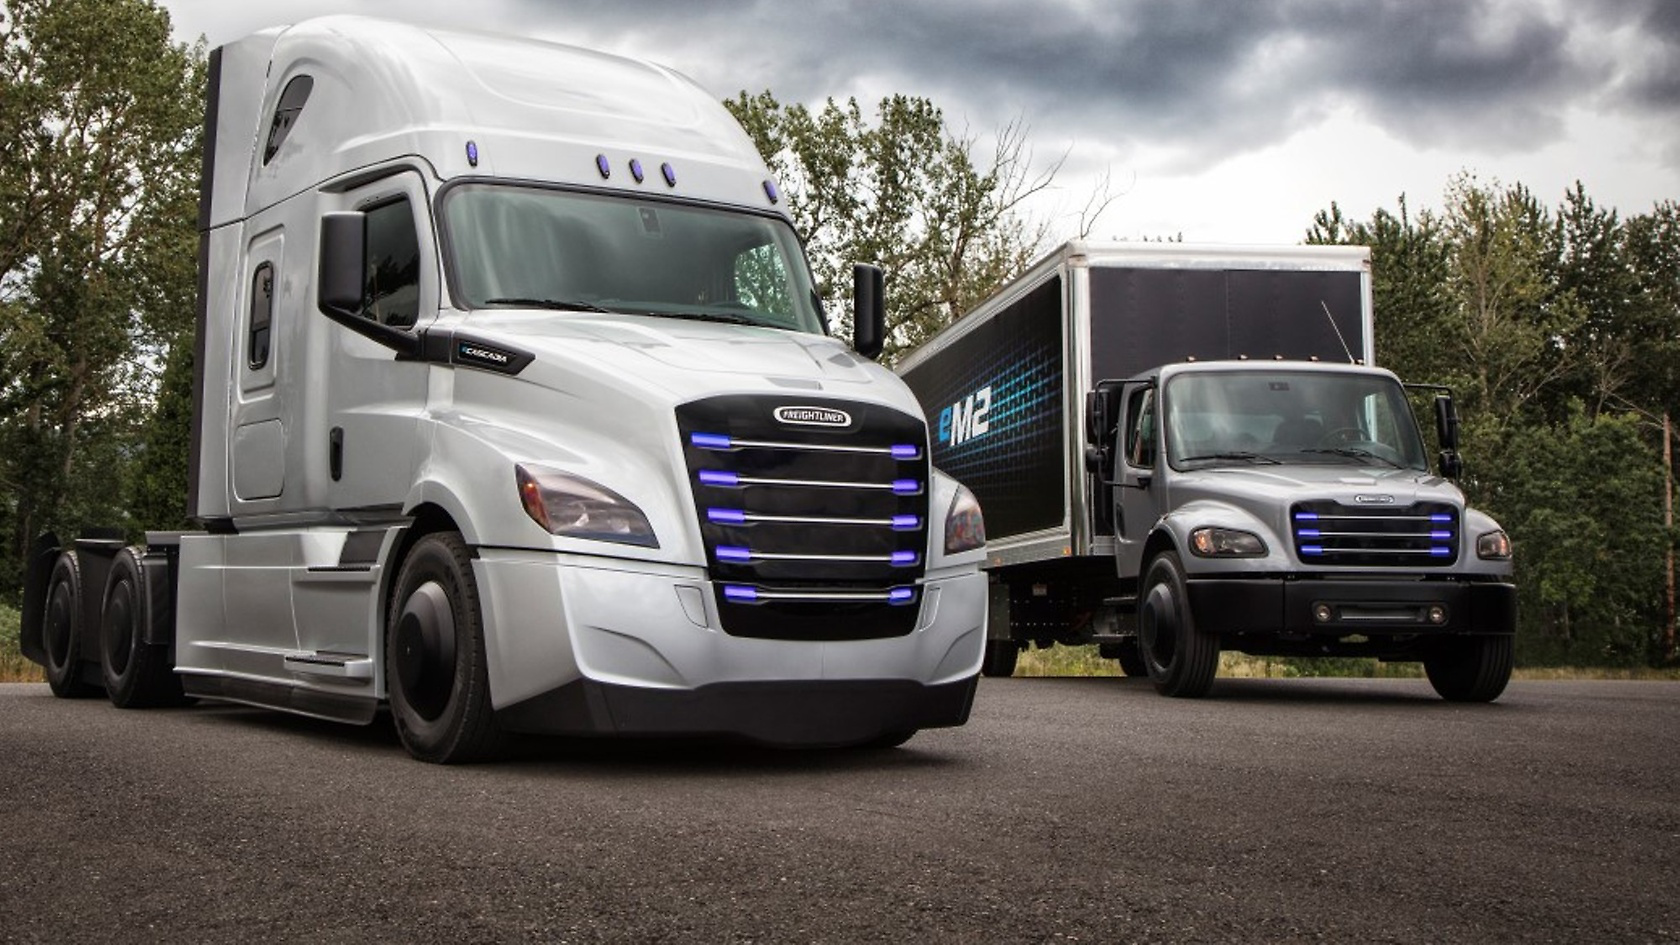 freightliner eCascadia with the freightliner eM2 all-electric trucks